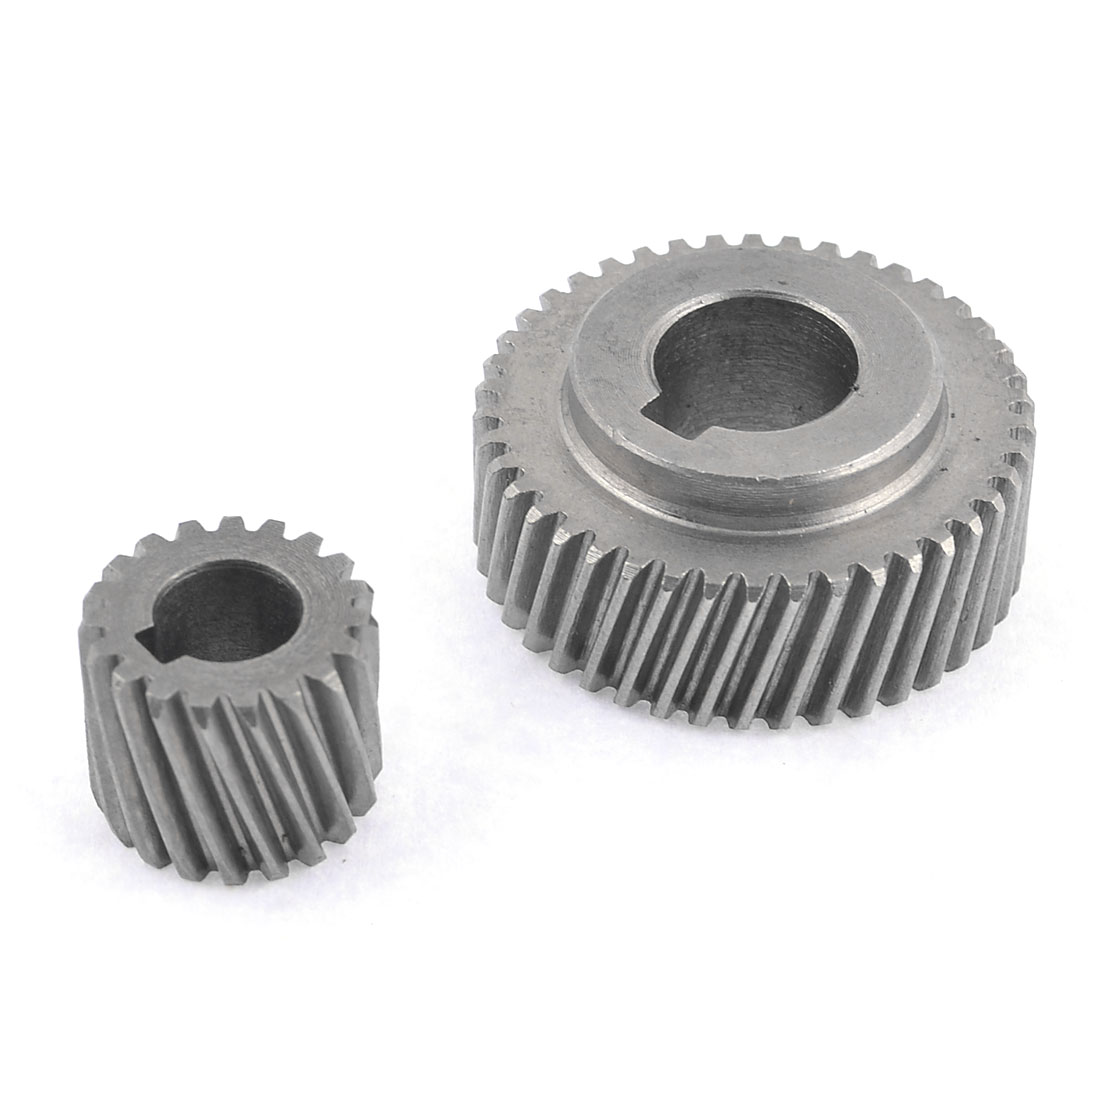 Repair Part 12mm Inner Dia Ring Spiral Bevel Gear Pinion Set for Makita 4100NH